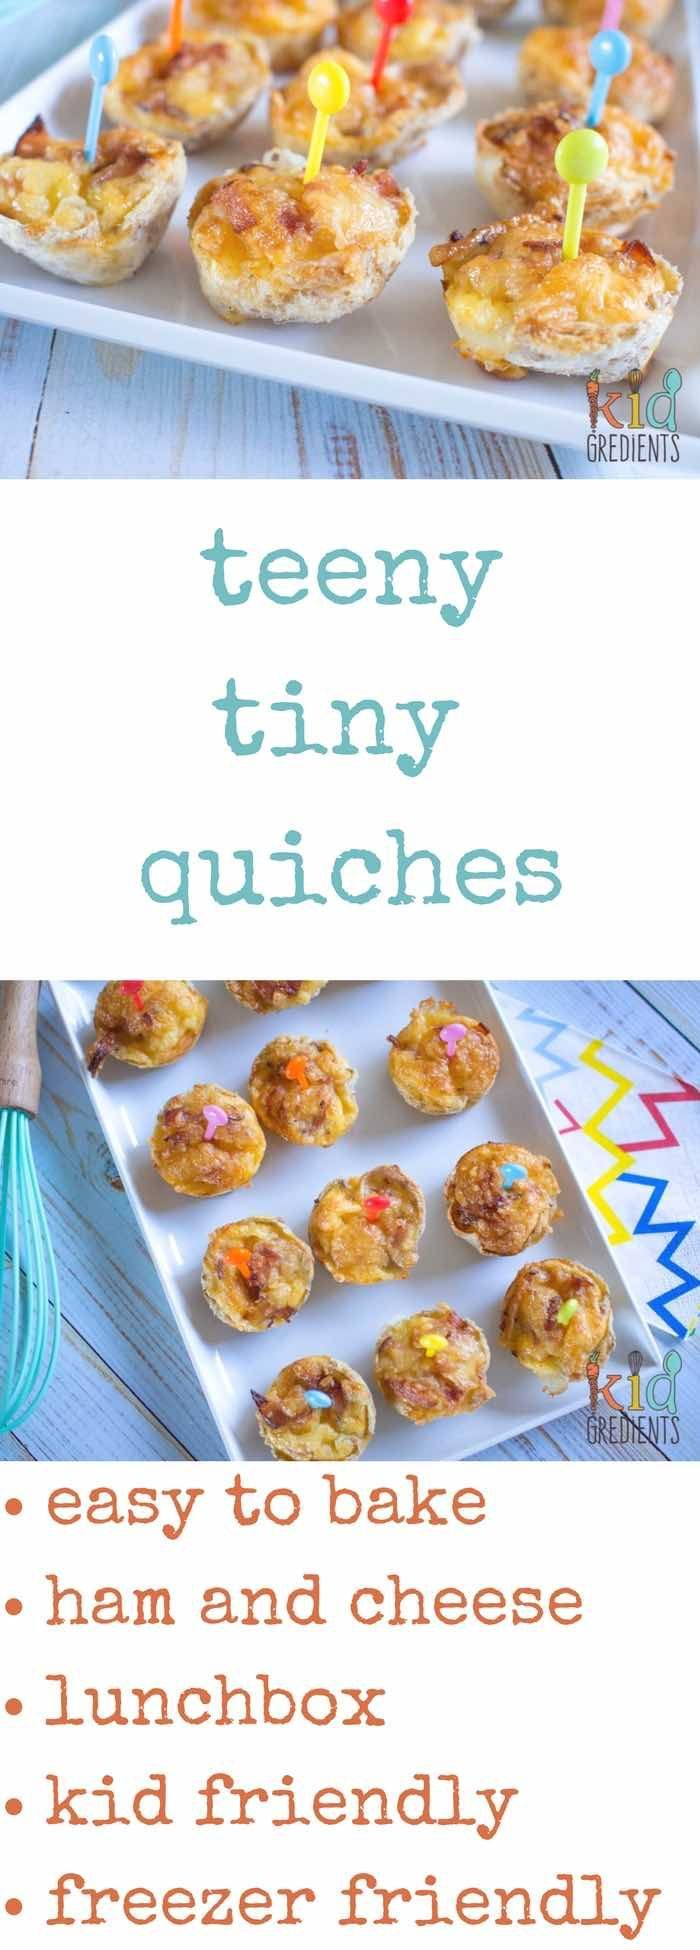 Teeny tiny quiches, these are the easiest lunchbox item you can make! Easy recipe that's a kid friendly party food! via @kidgredients